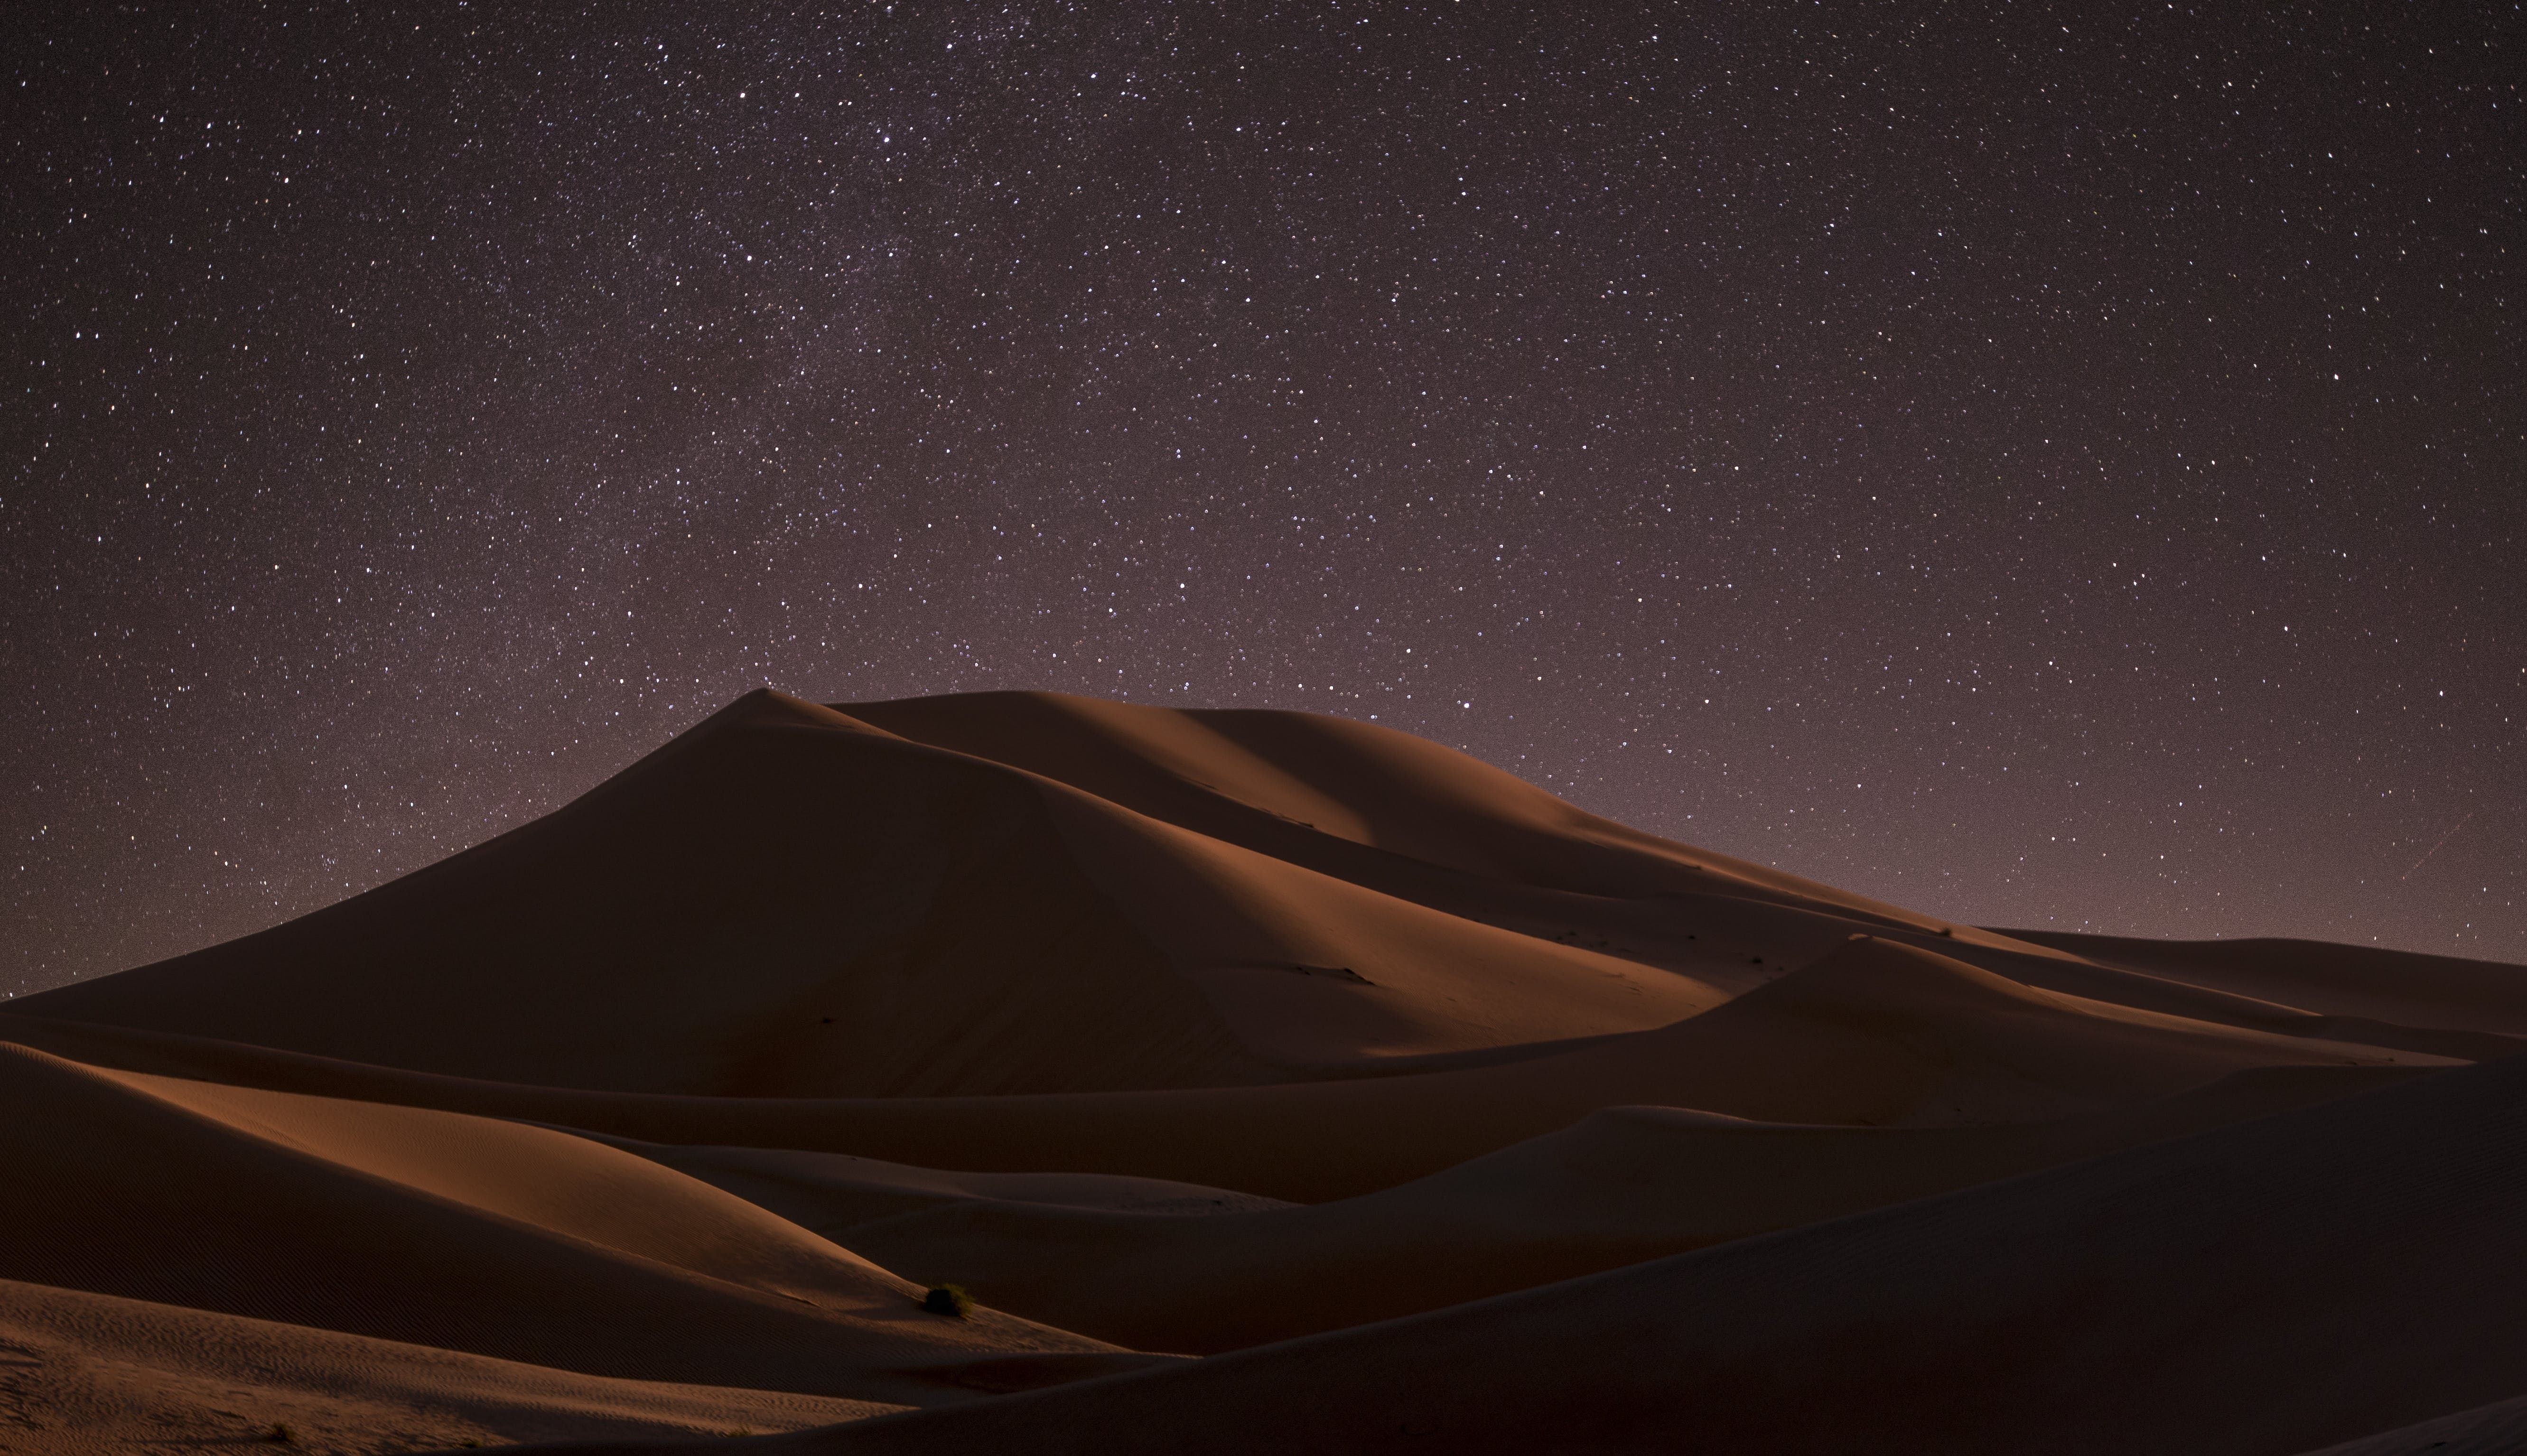 Desert during Nighttime